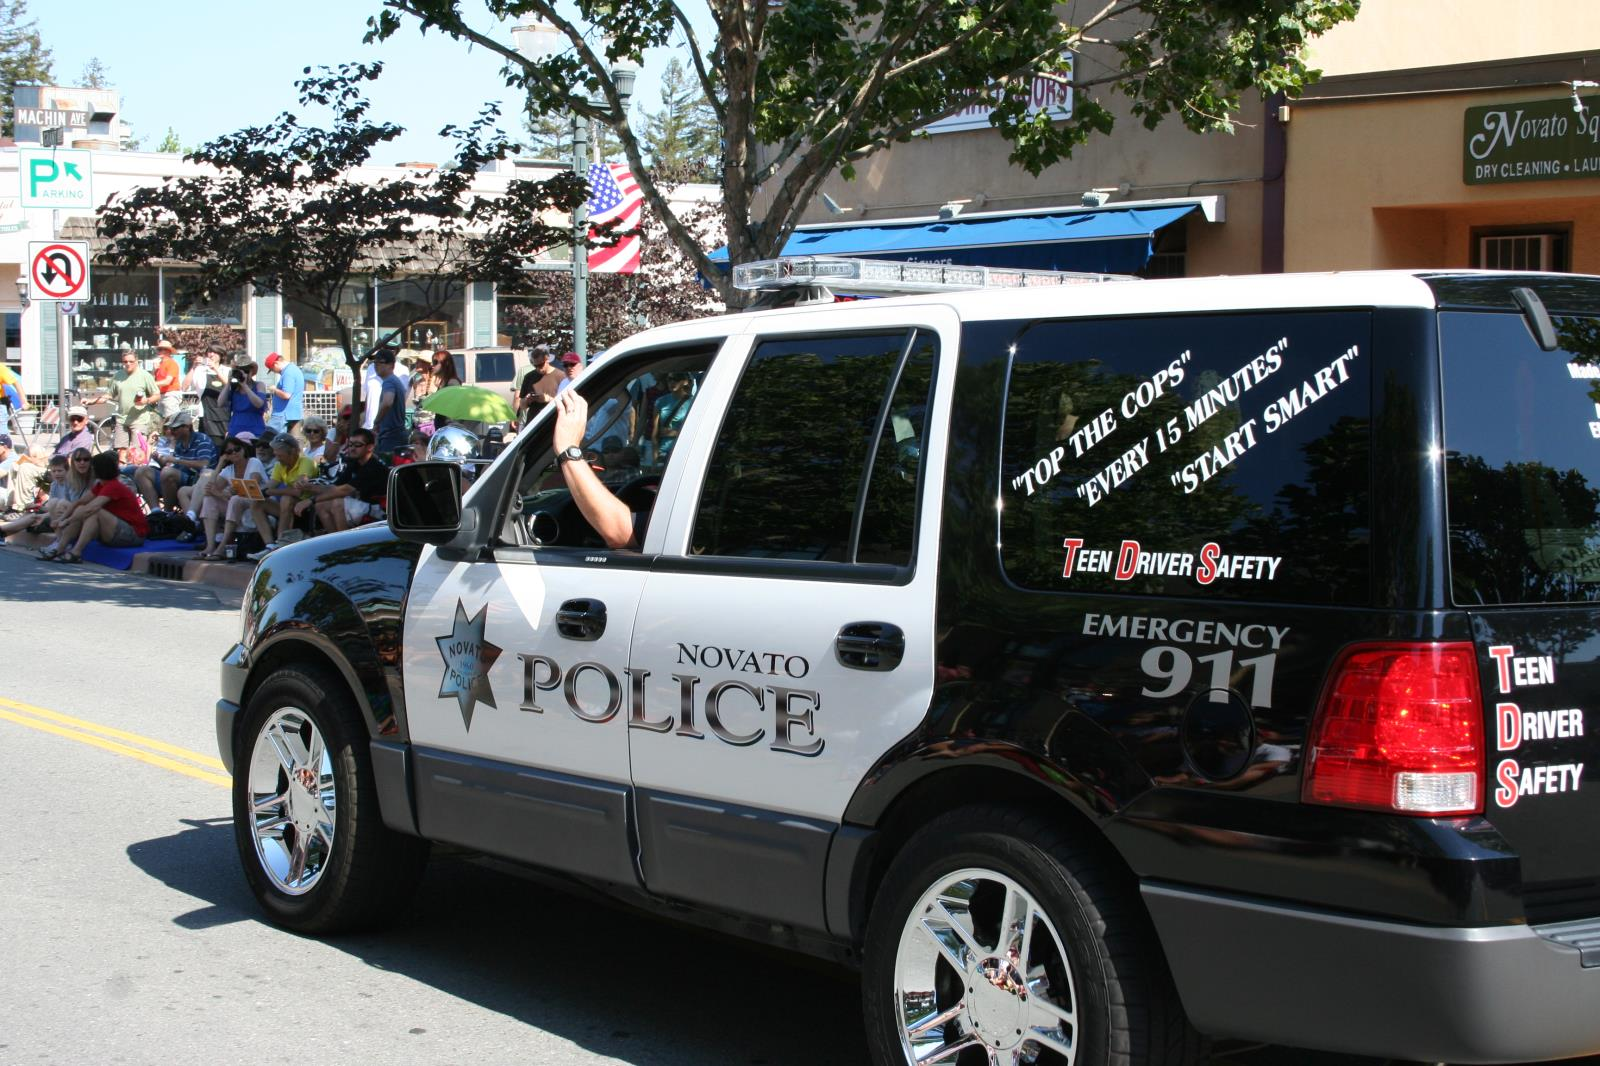 picture of police vehicle in parade